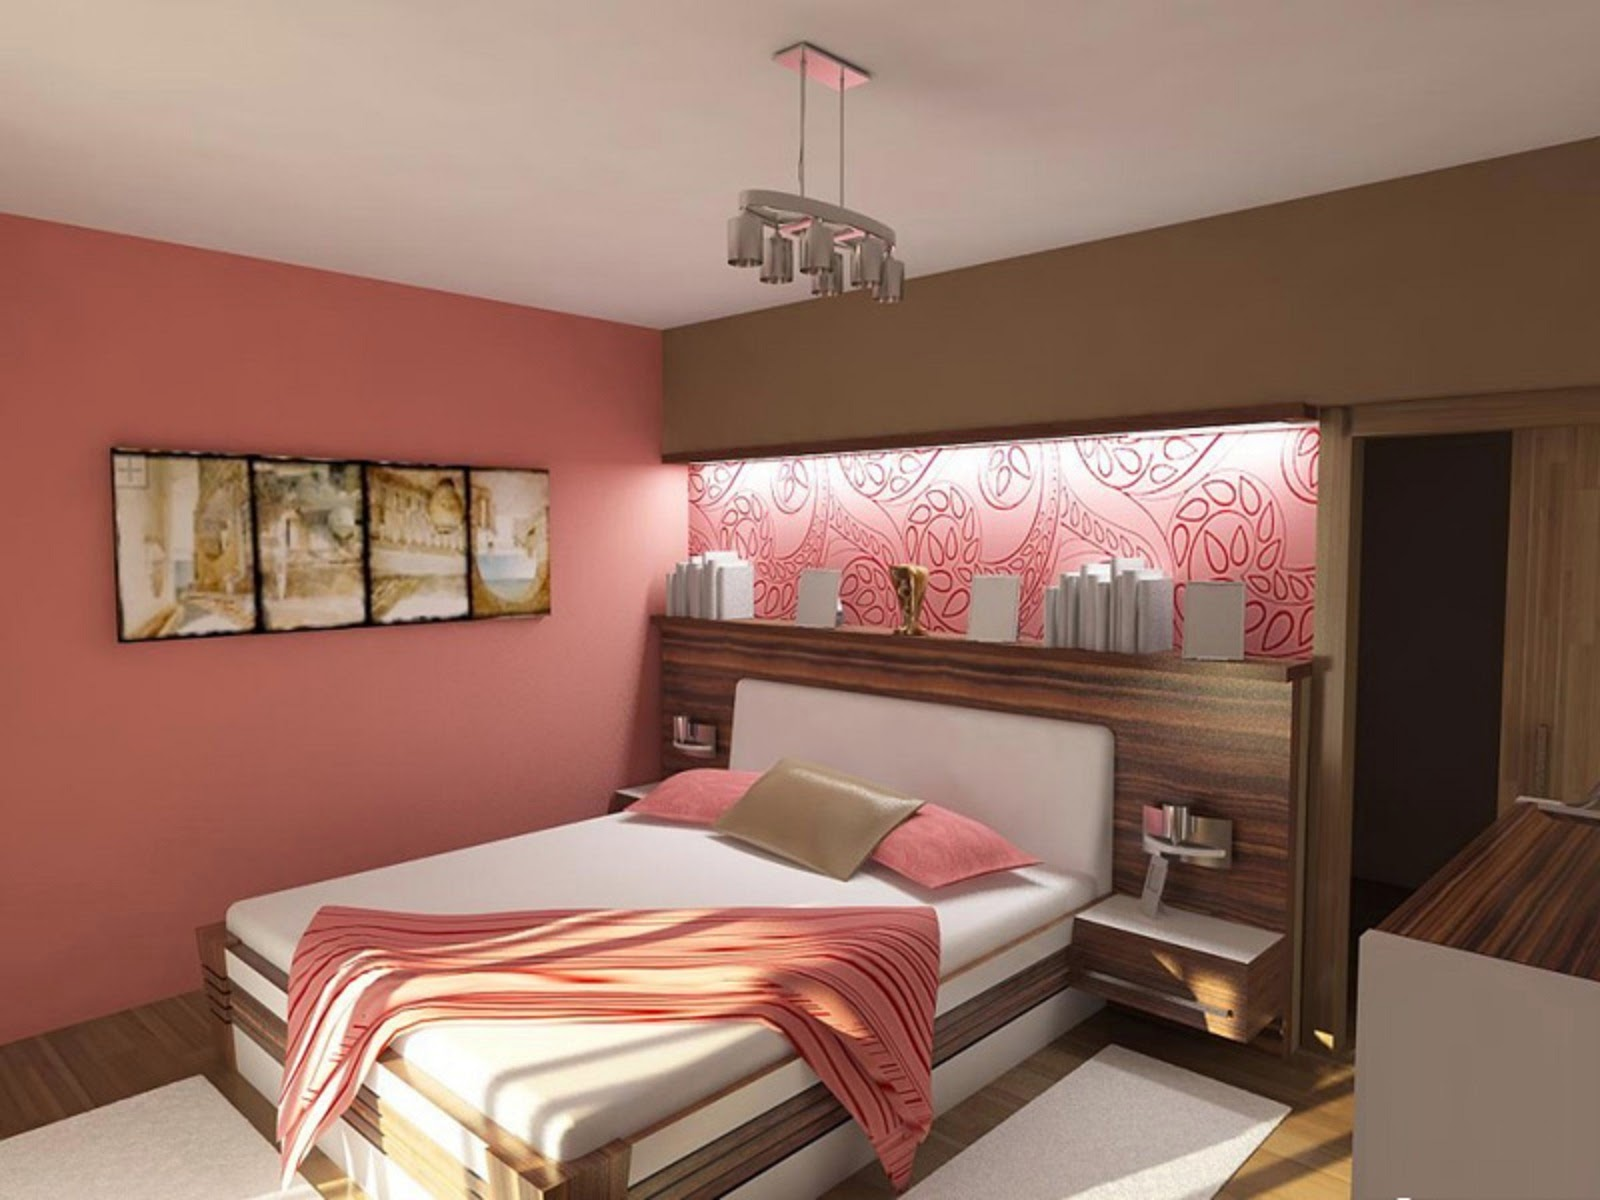 Dynamic views beautiful modern bedroom designs 2014 2015 image download Design a bedroom online free